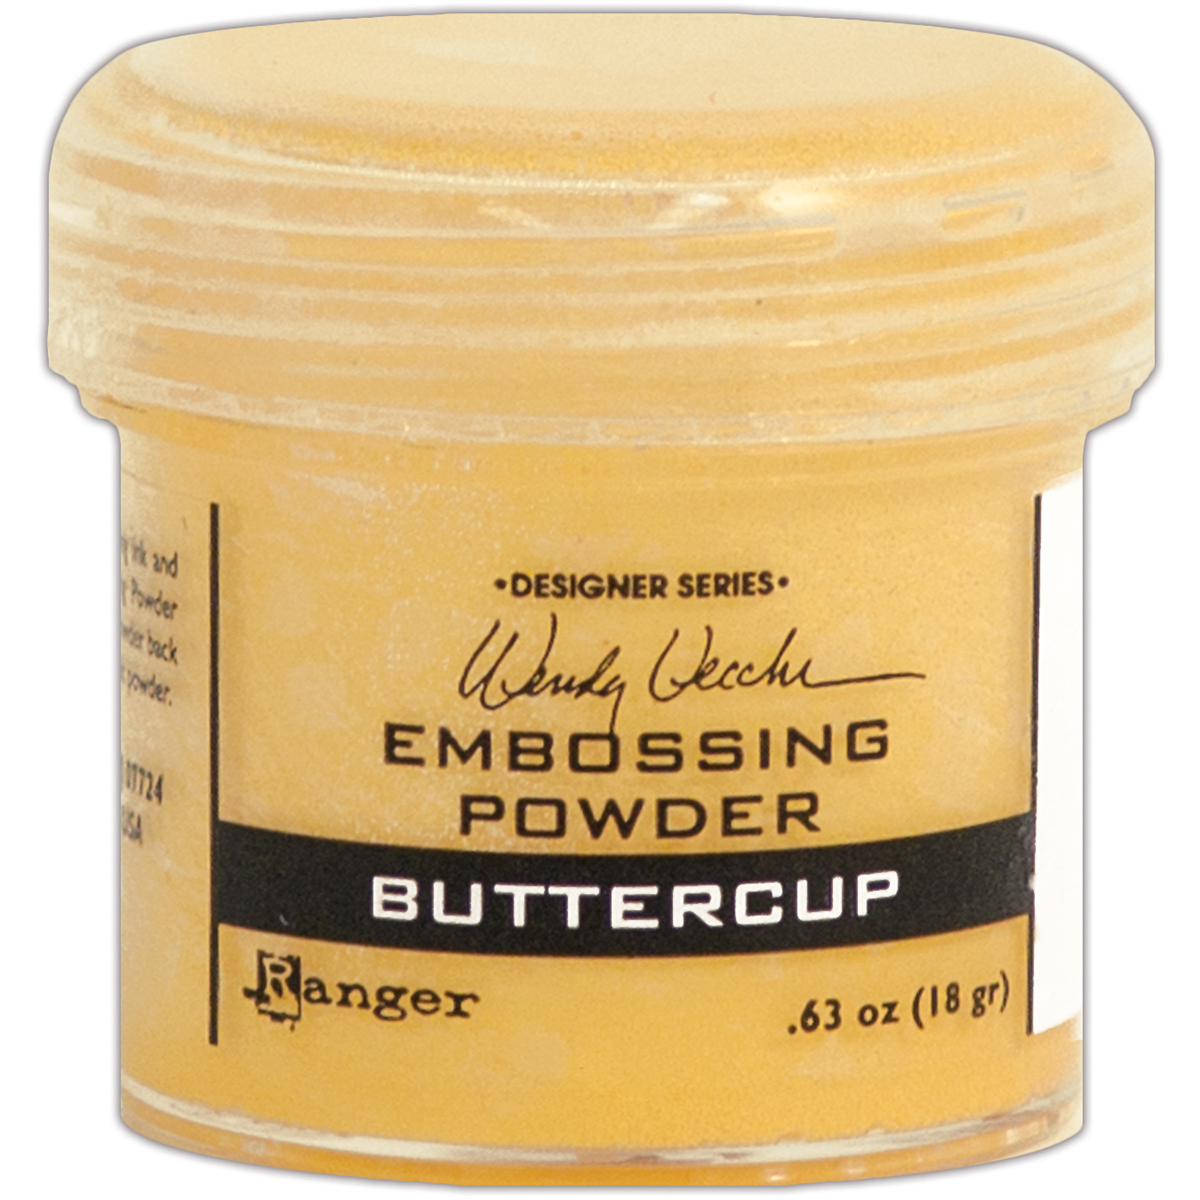 Wendy Vecchi Embossing Powder Buttercup